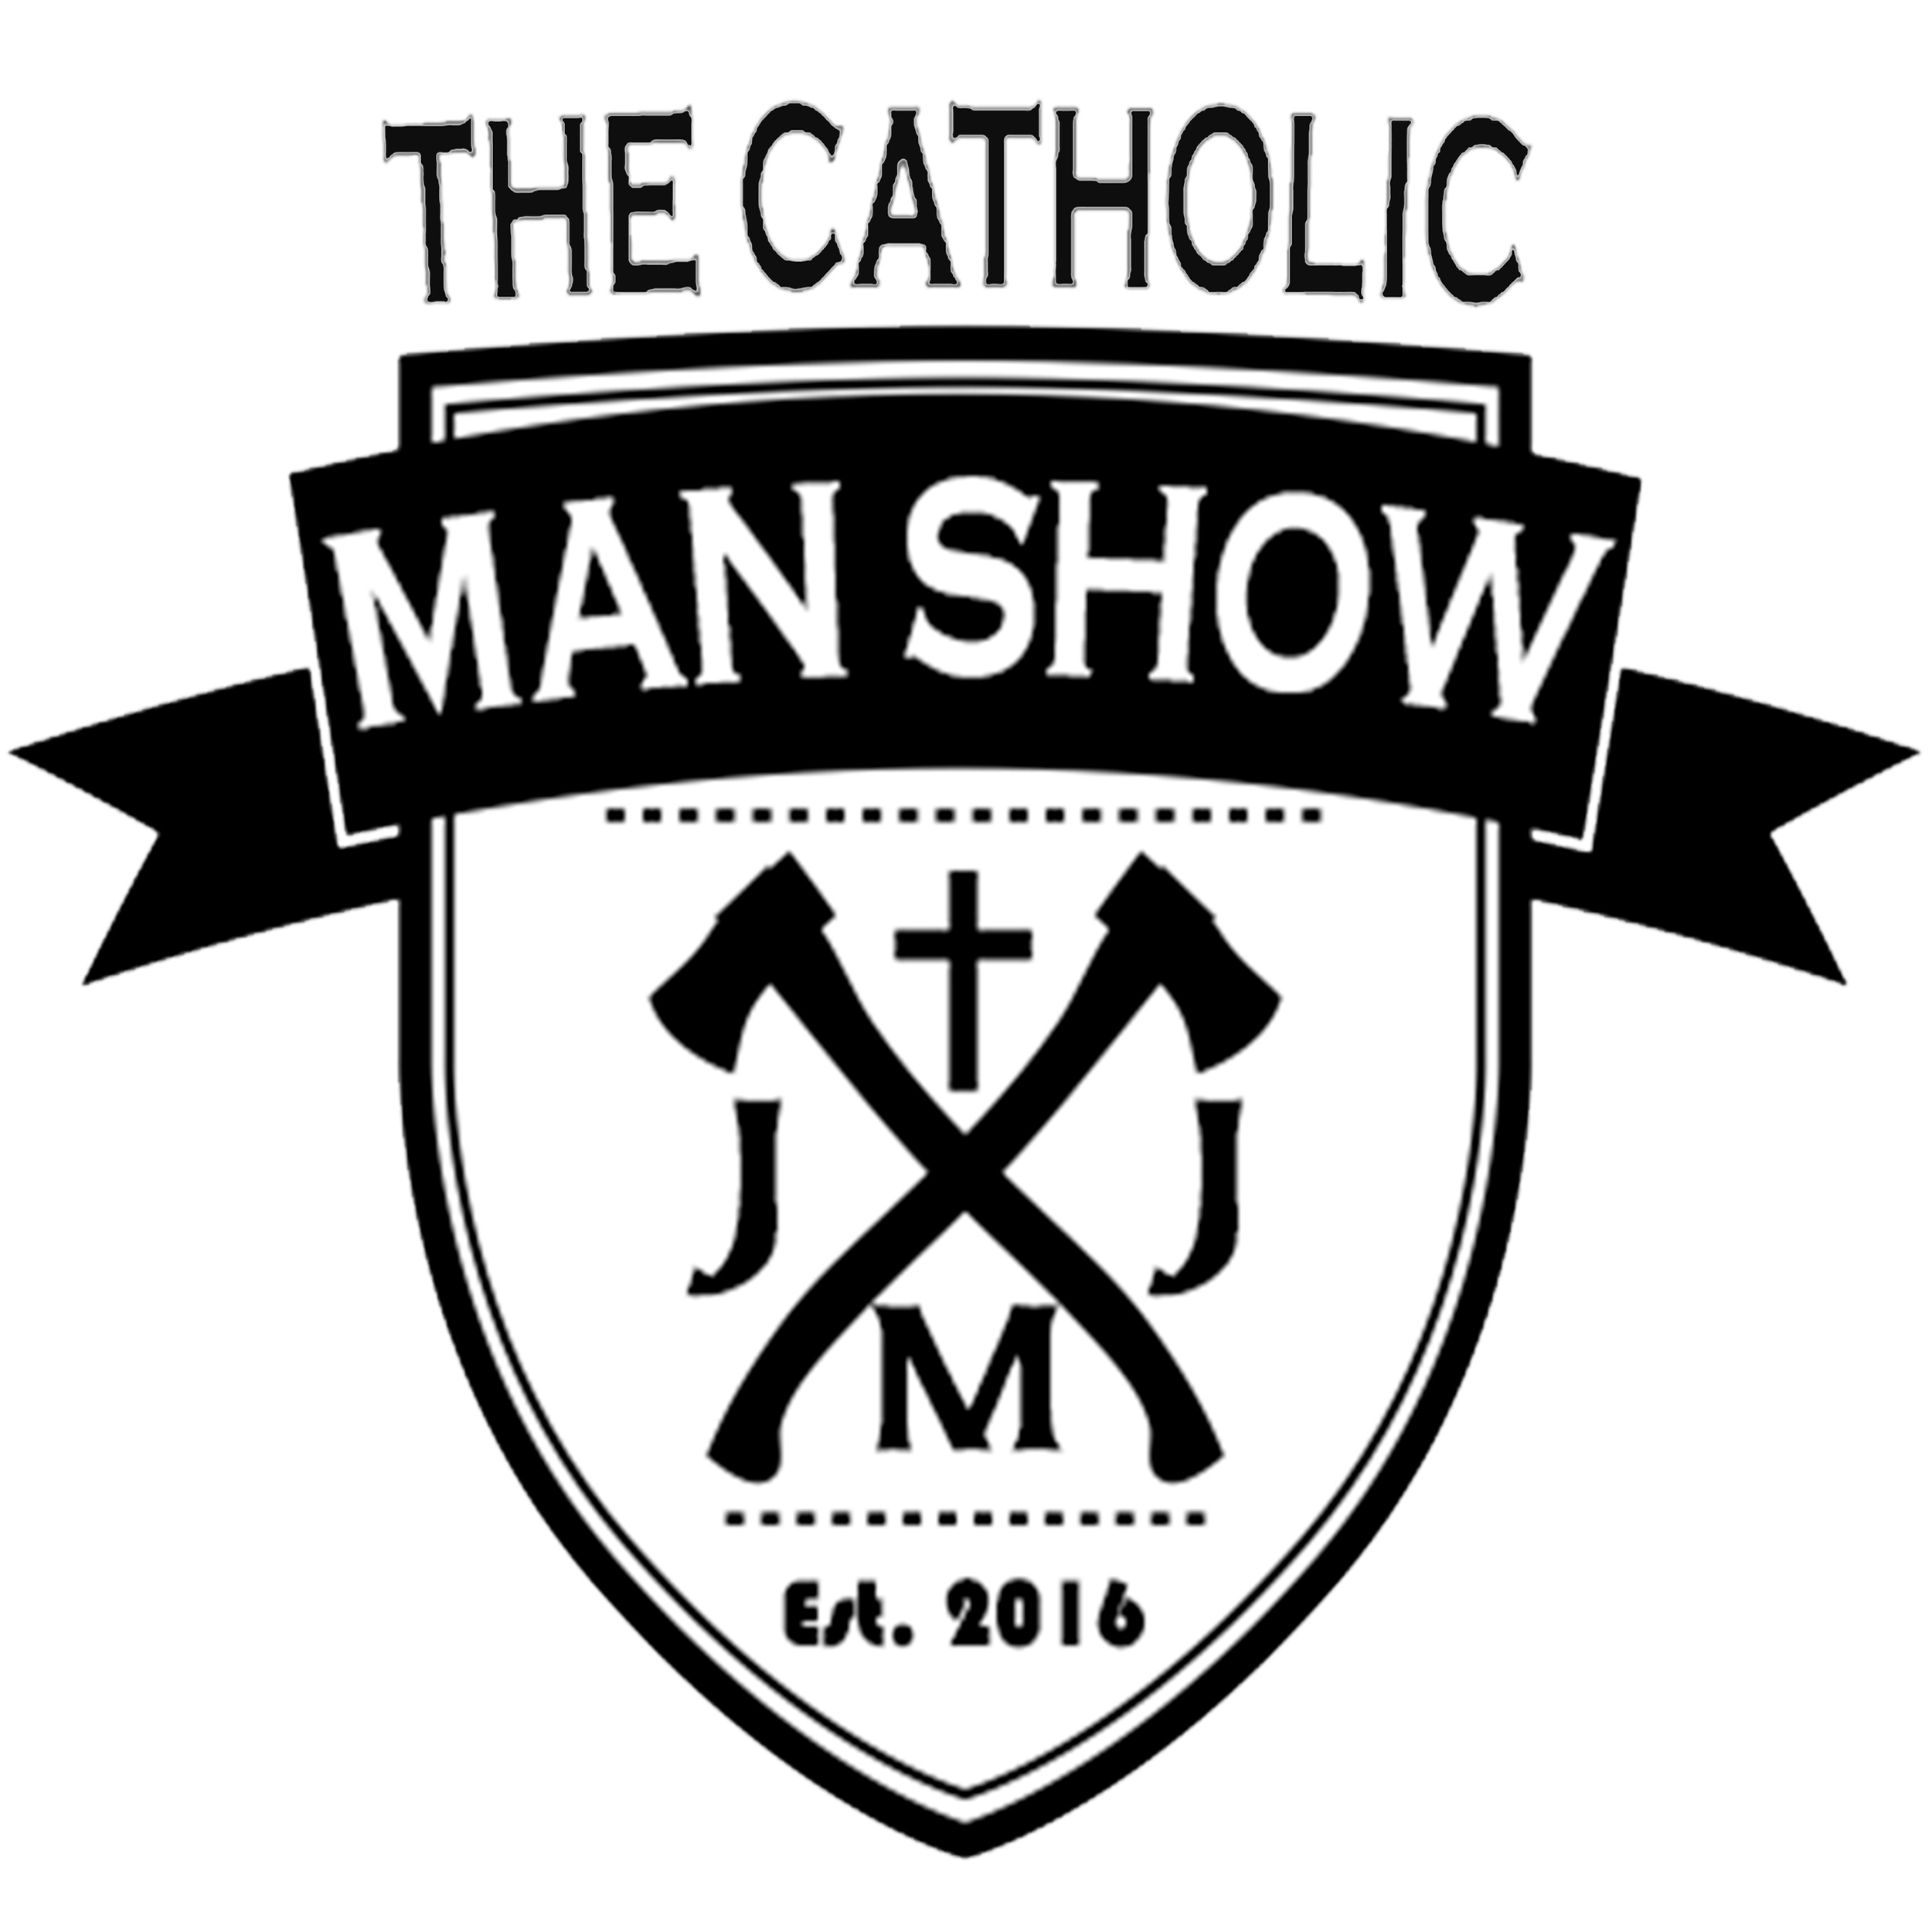 The Catholic Man Show started in May of 2016 when Adam Minihan and David Niles realized, after running a Catholic radio station in Tulsa, the need for Catholic radio programs for men. Real, relatable, and often comical, Adam and David have a conversation promoting the lost art of living virtuously.